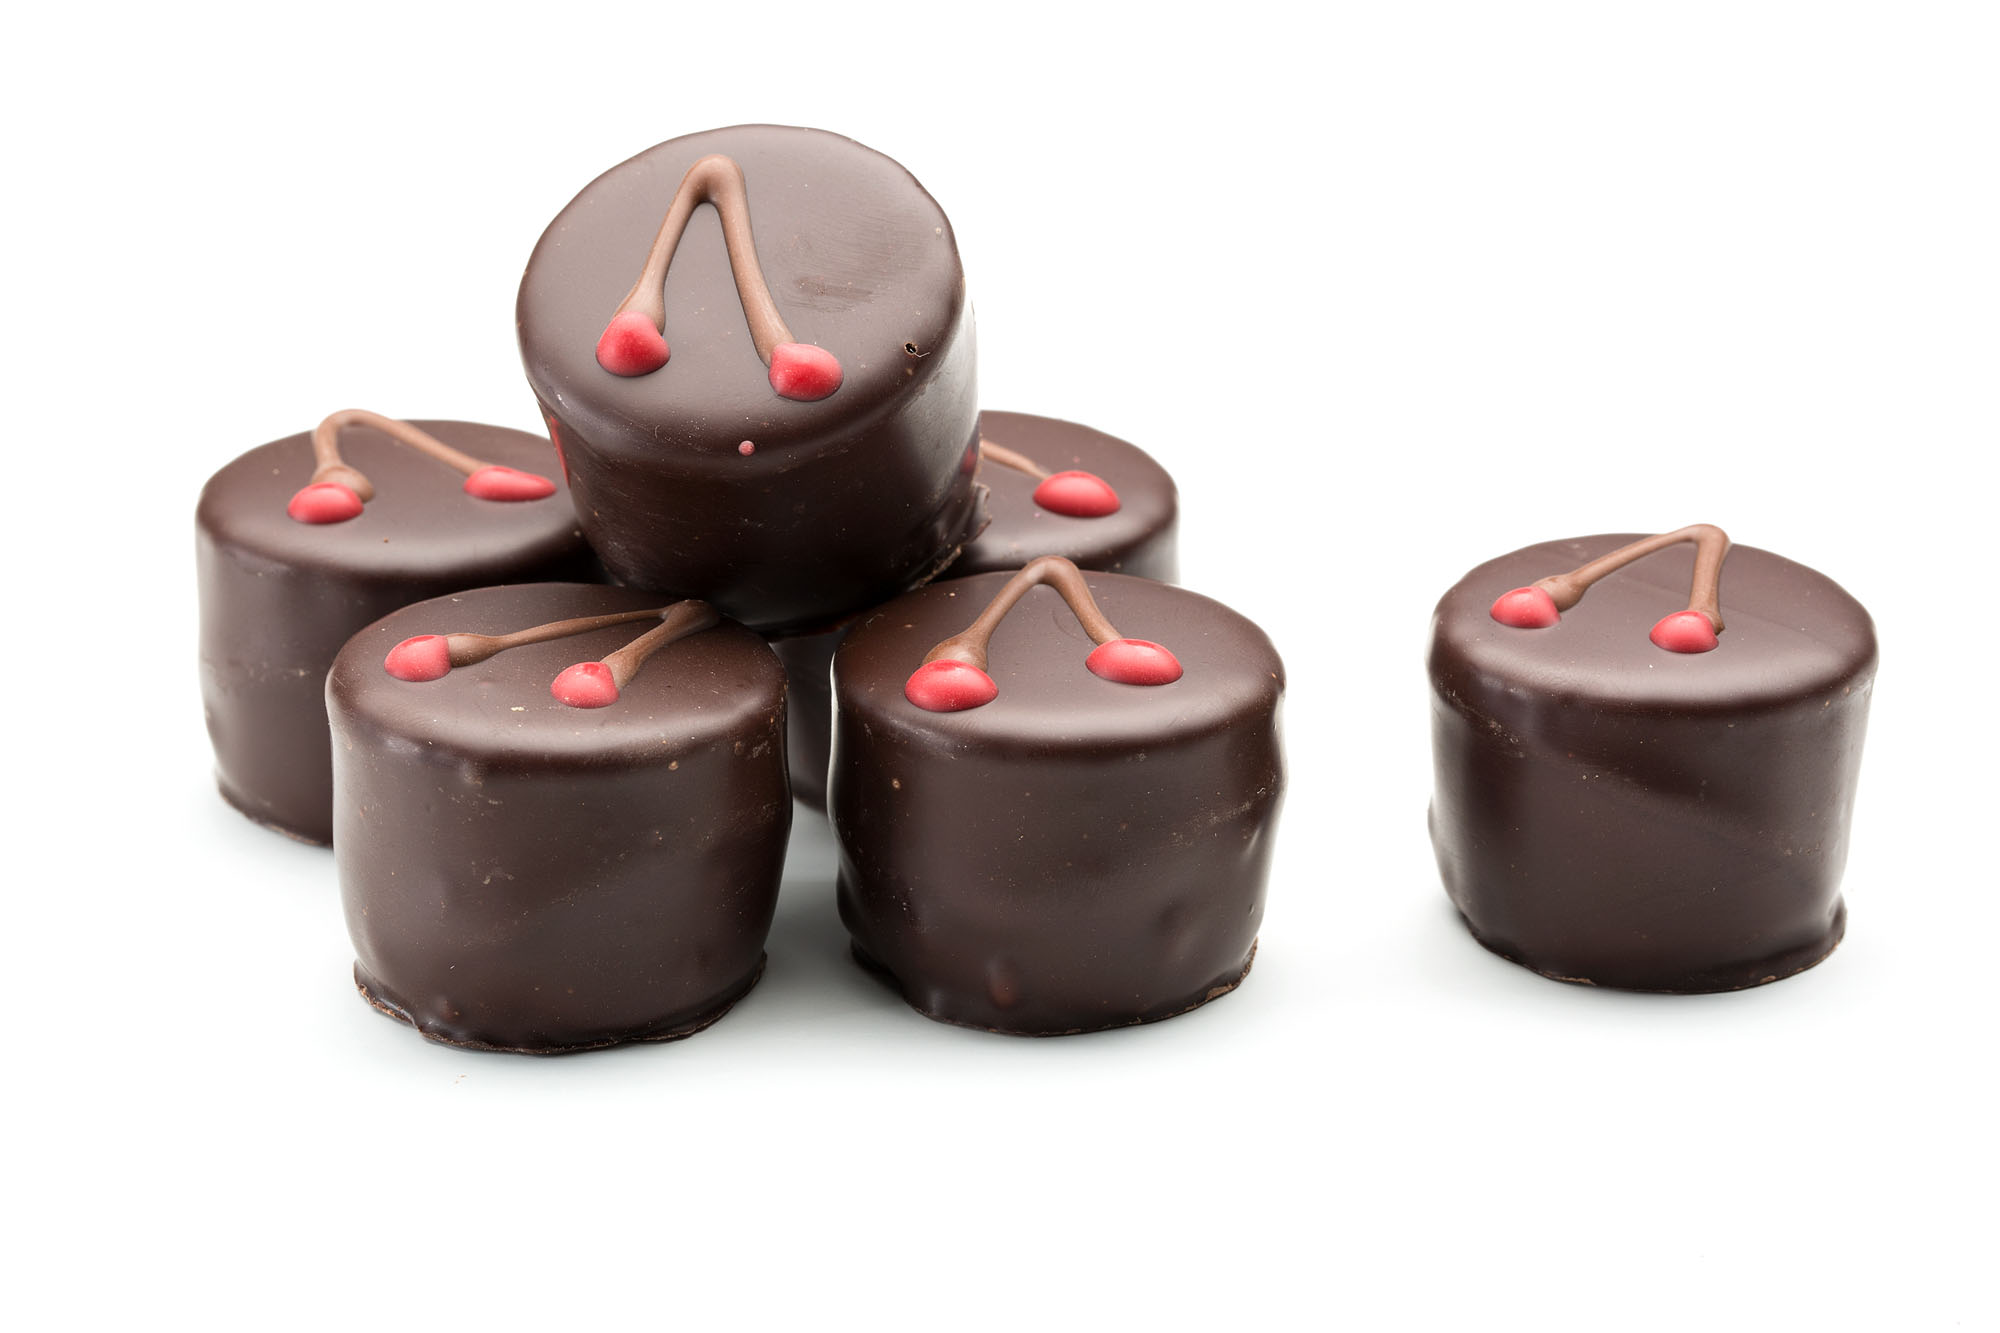 Cherry ganache chocolate with whole cherry centre